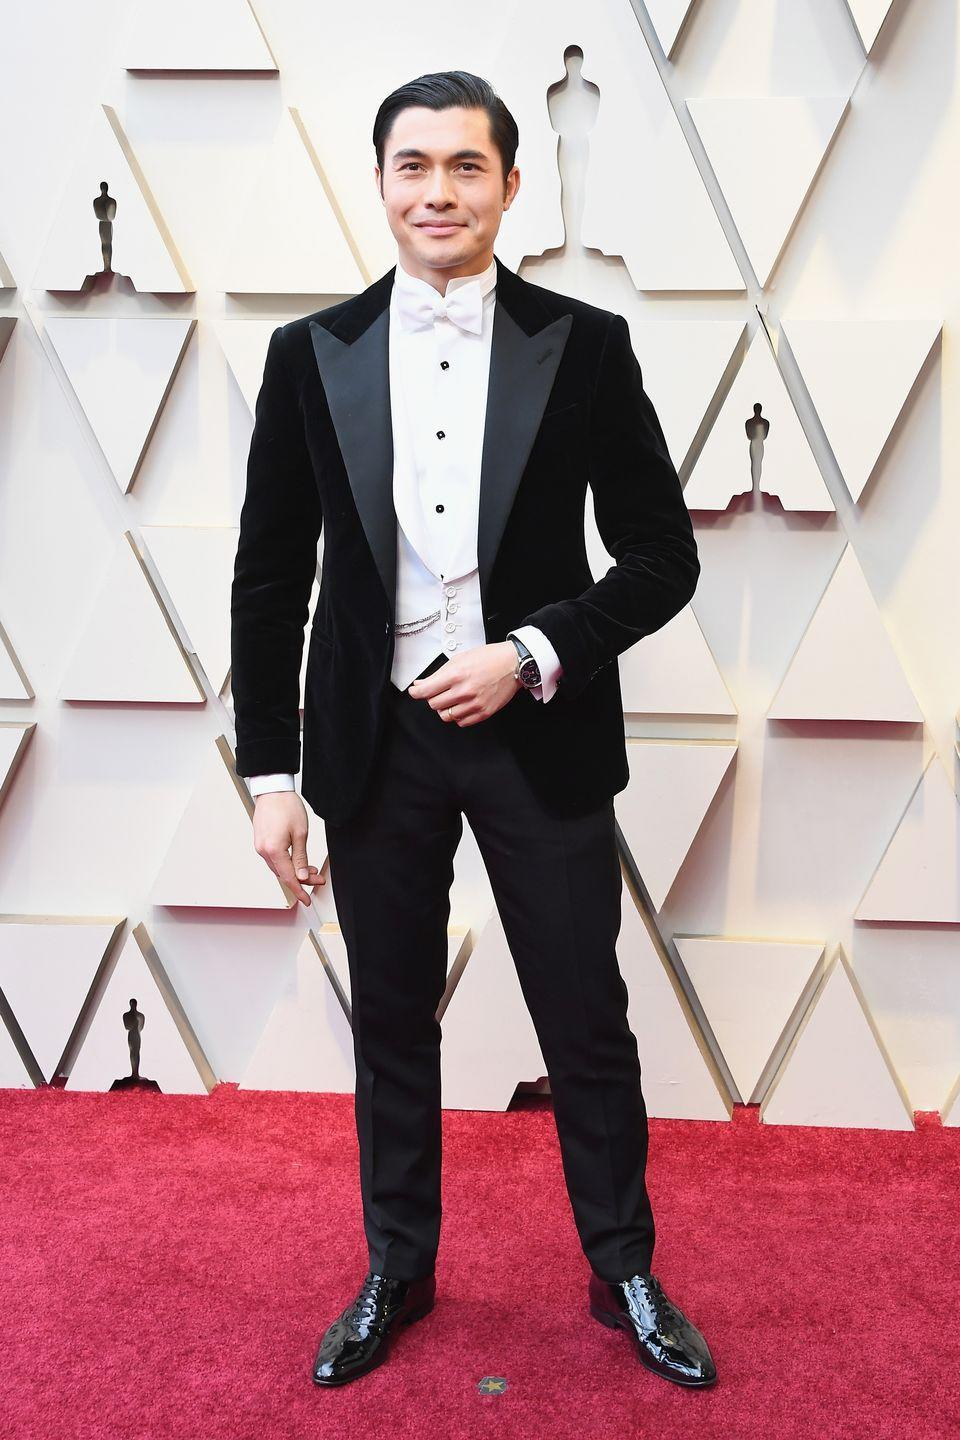 <p>After a breakout year as the star of 2018's <em>Crazy Rich Asians</em>, Henry Golding followed his performance up with a role in <em>The Gentleman</em>. But honestly, his red carpet style alone could convince us of his leading man status. </p>